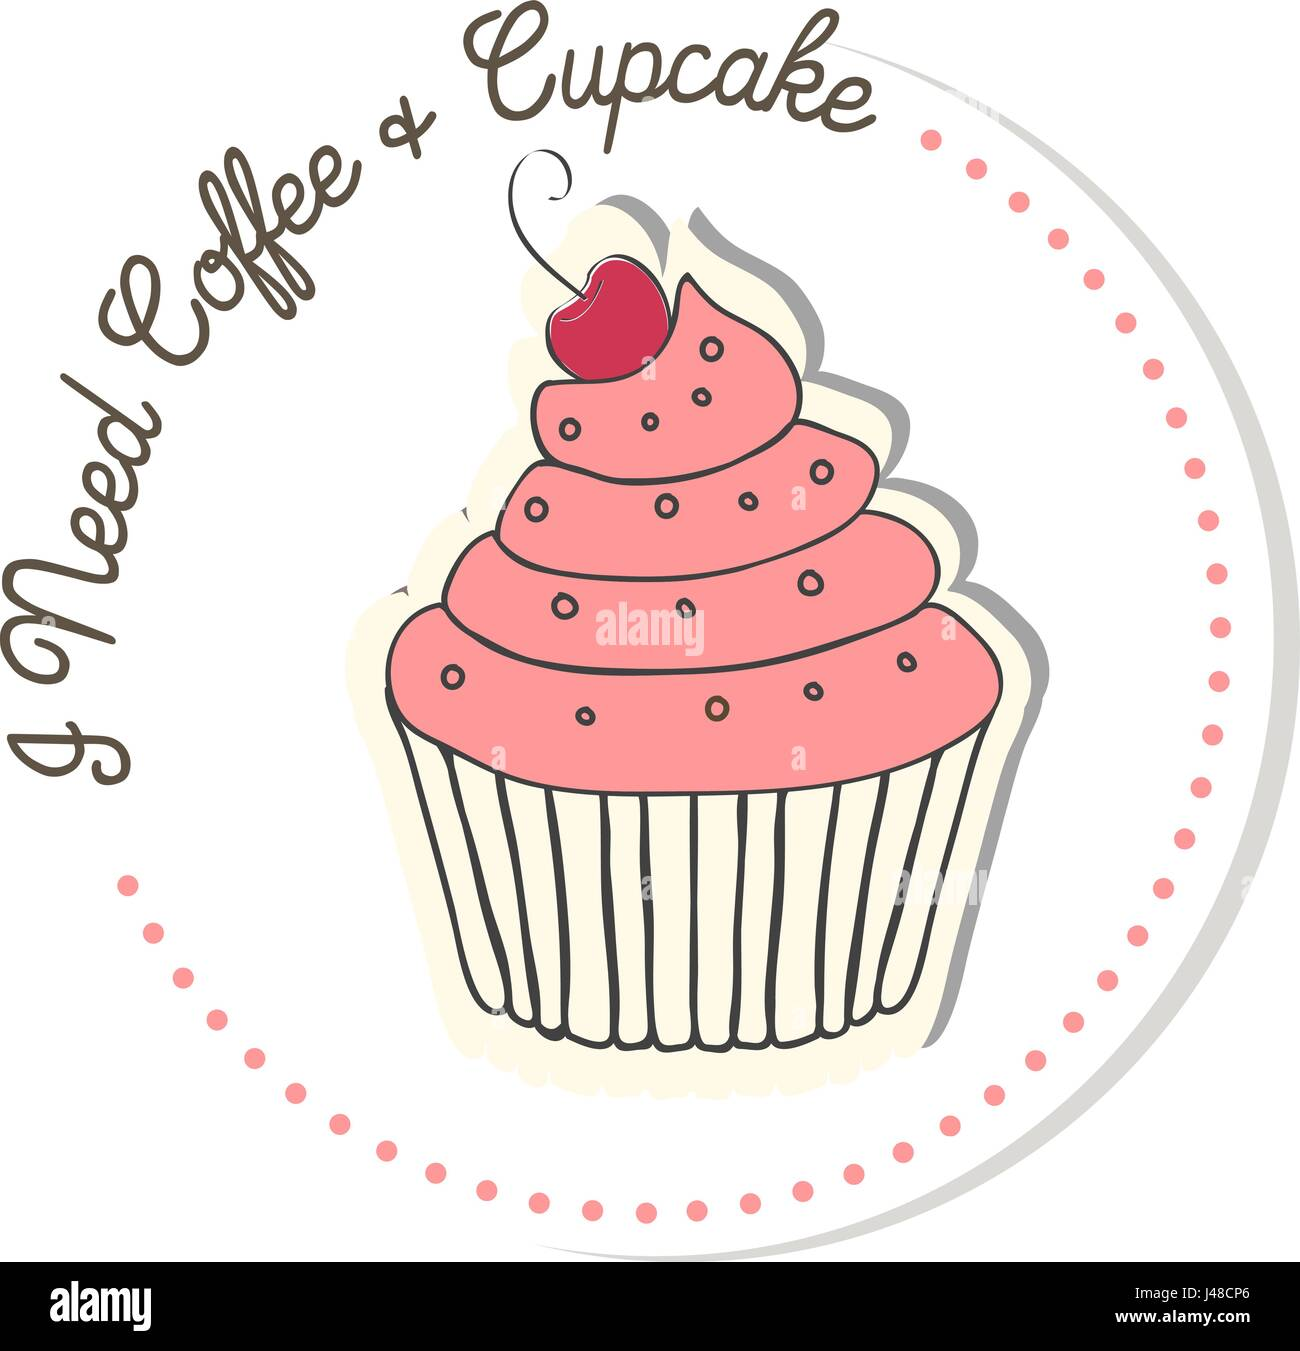 Muffin Blueberry Chocolate And Chocolate Chip Vector Illustration Stock Vector Image Art Alamy